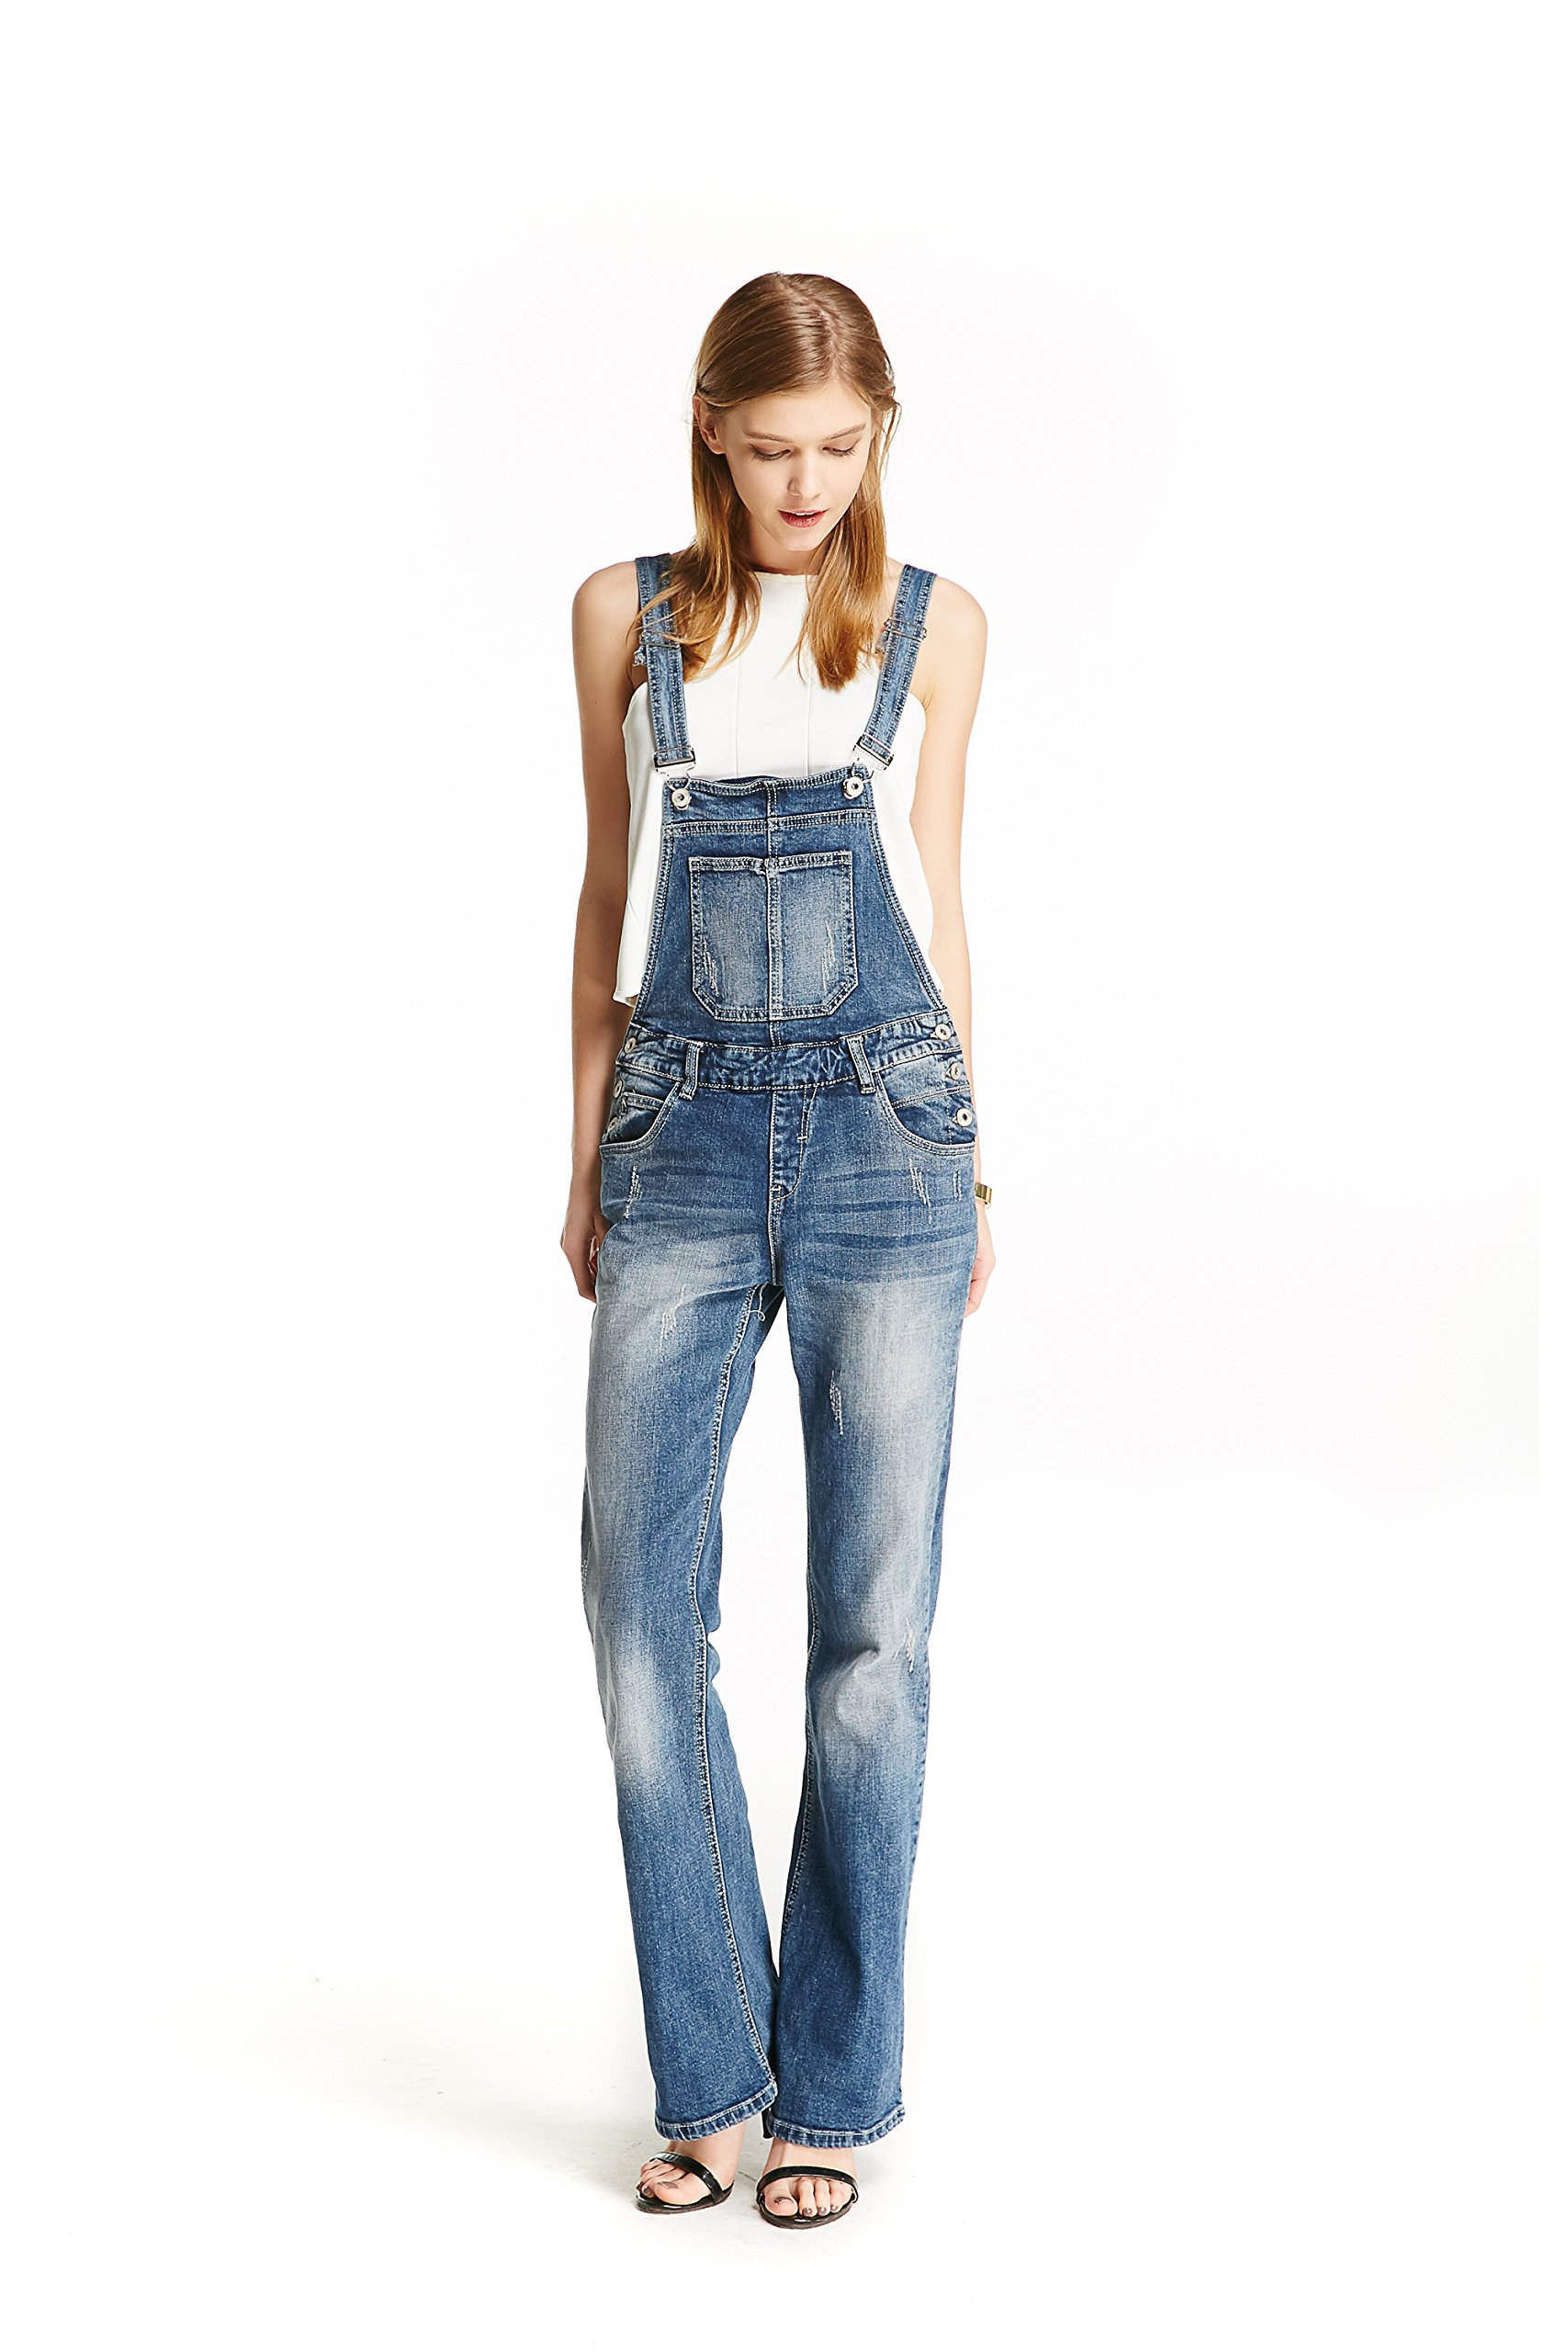 Track Seven Women S Relaxed Fitted Vintage Flare Denim